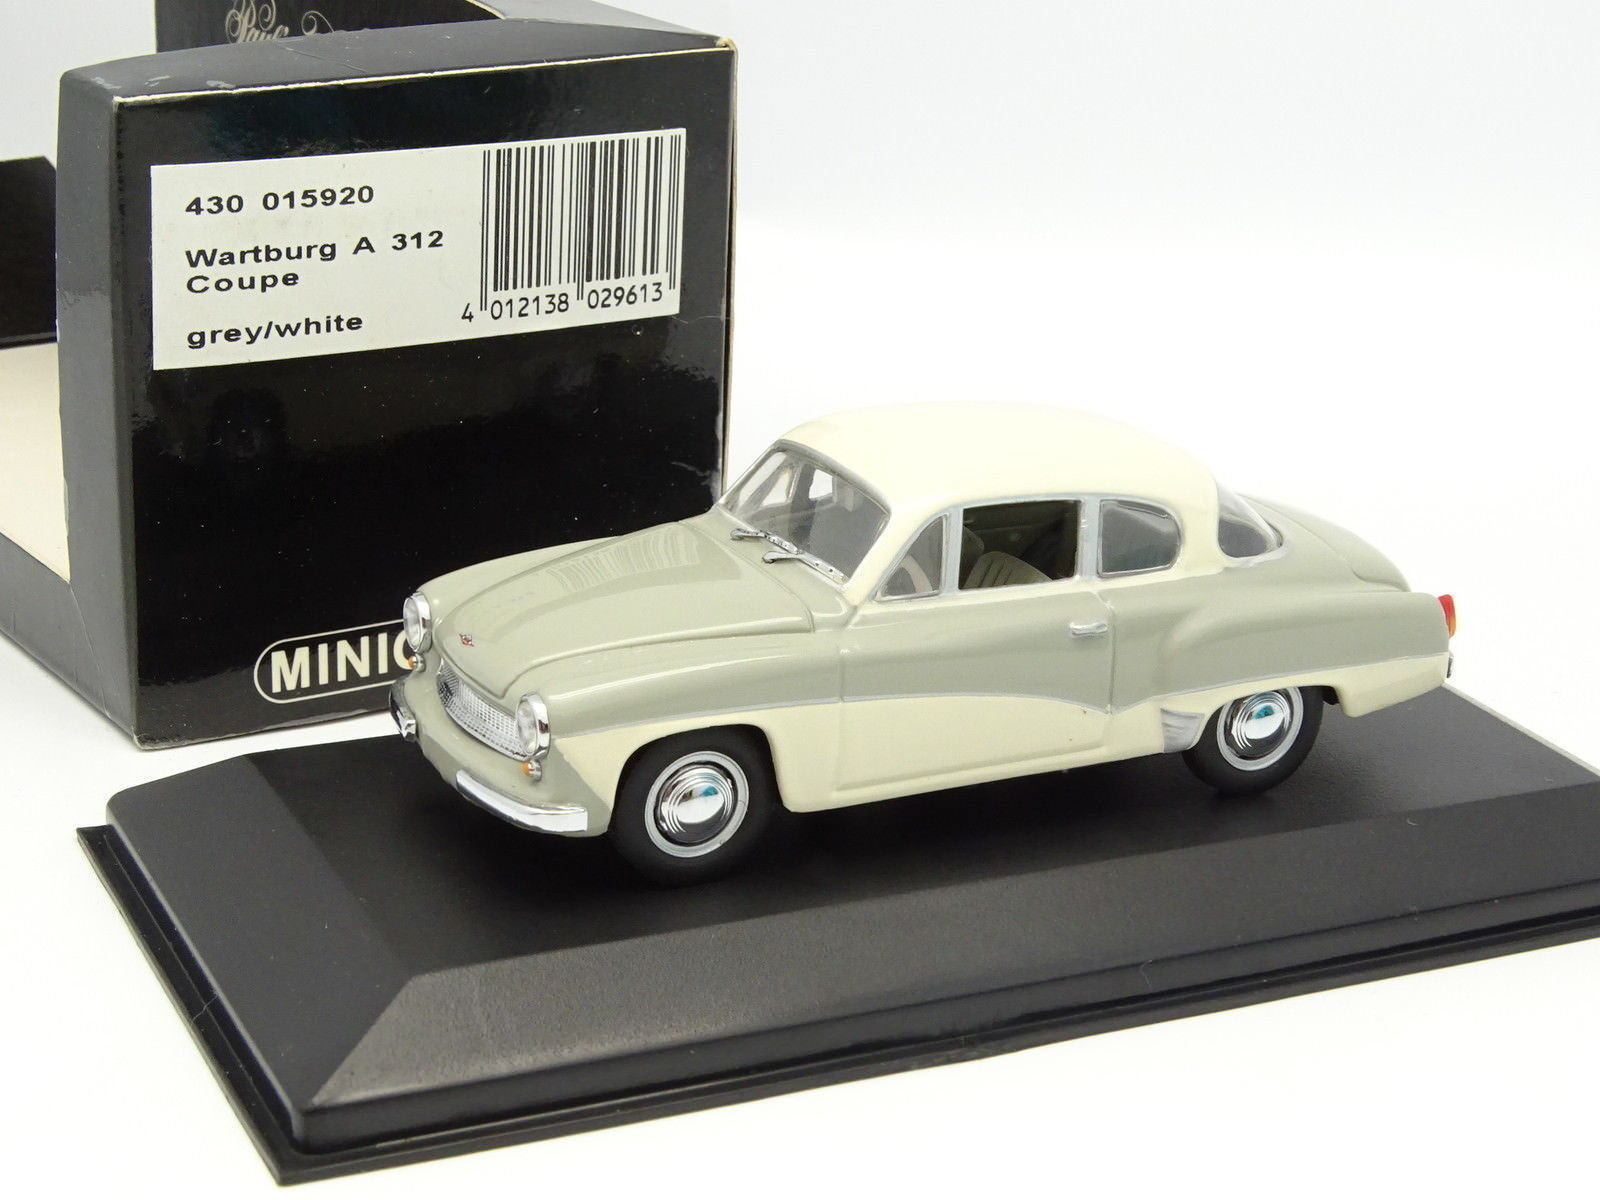 Minichamps 1 43 - skoda a312 coupe grey white